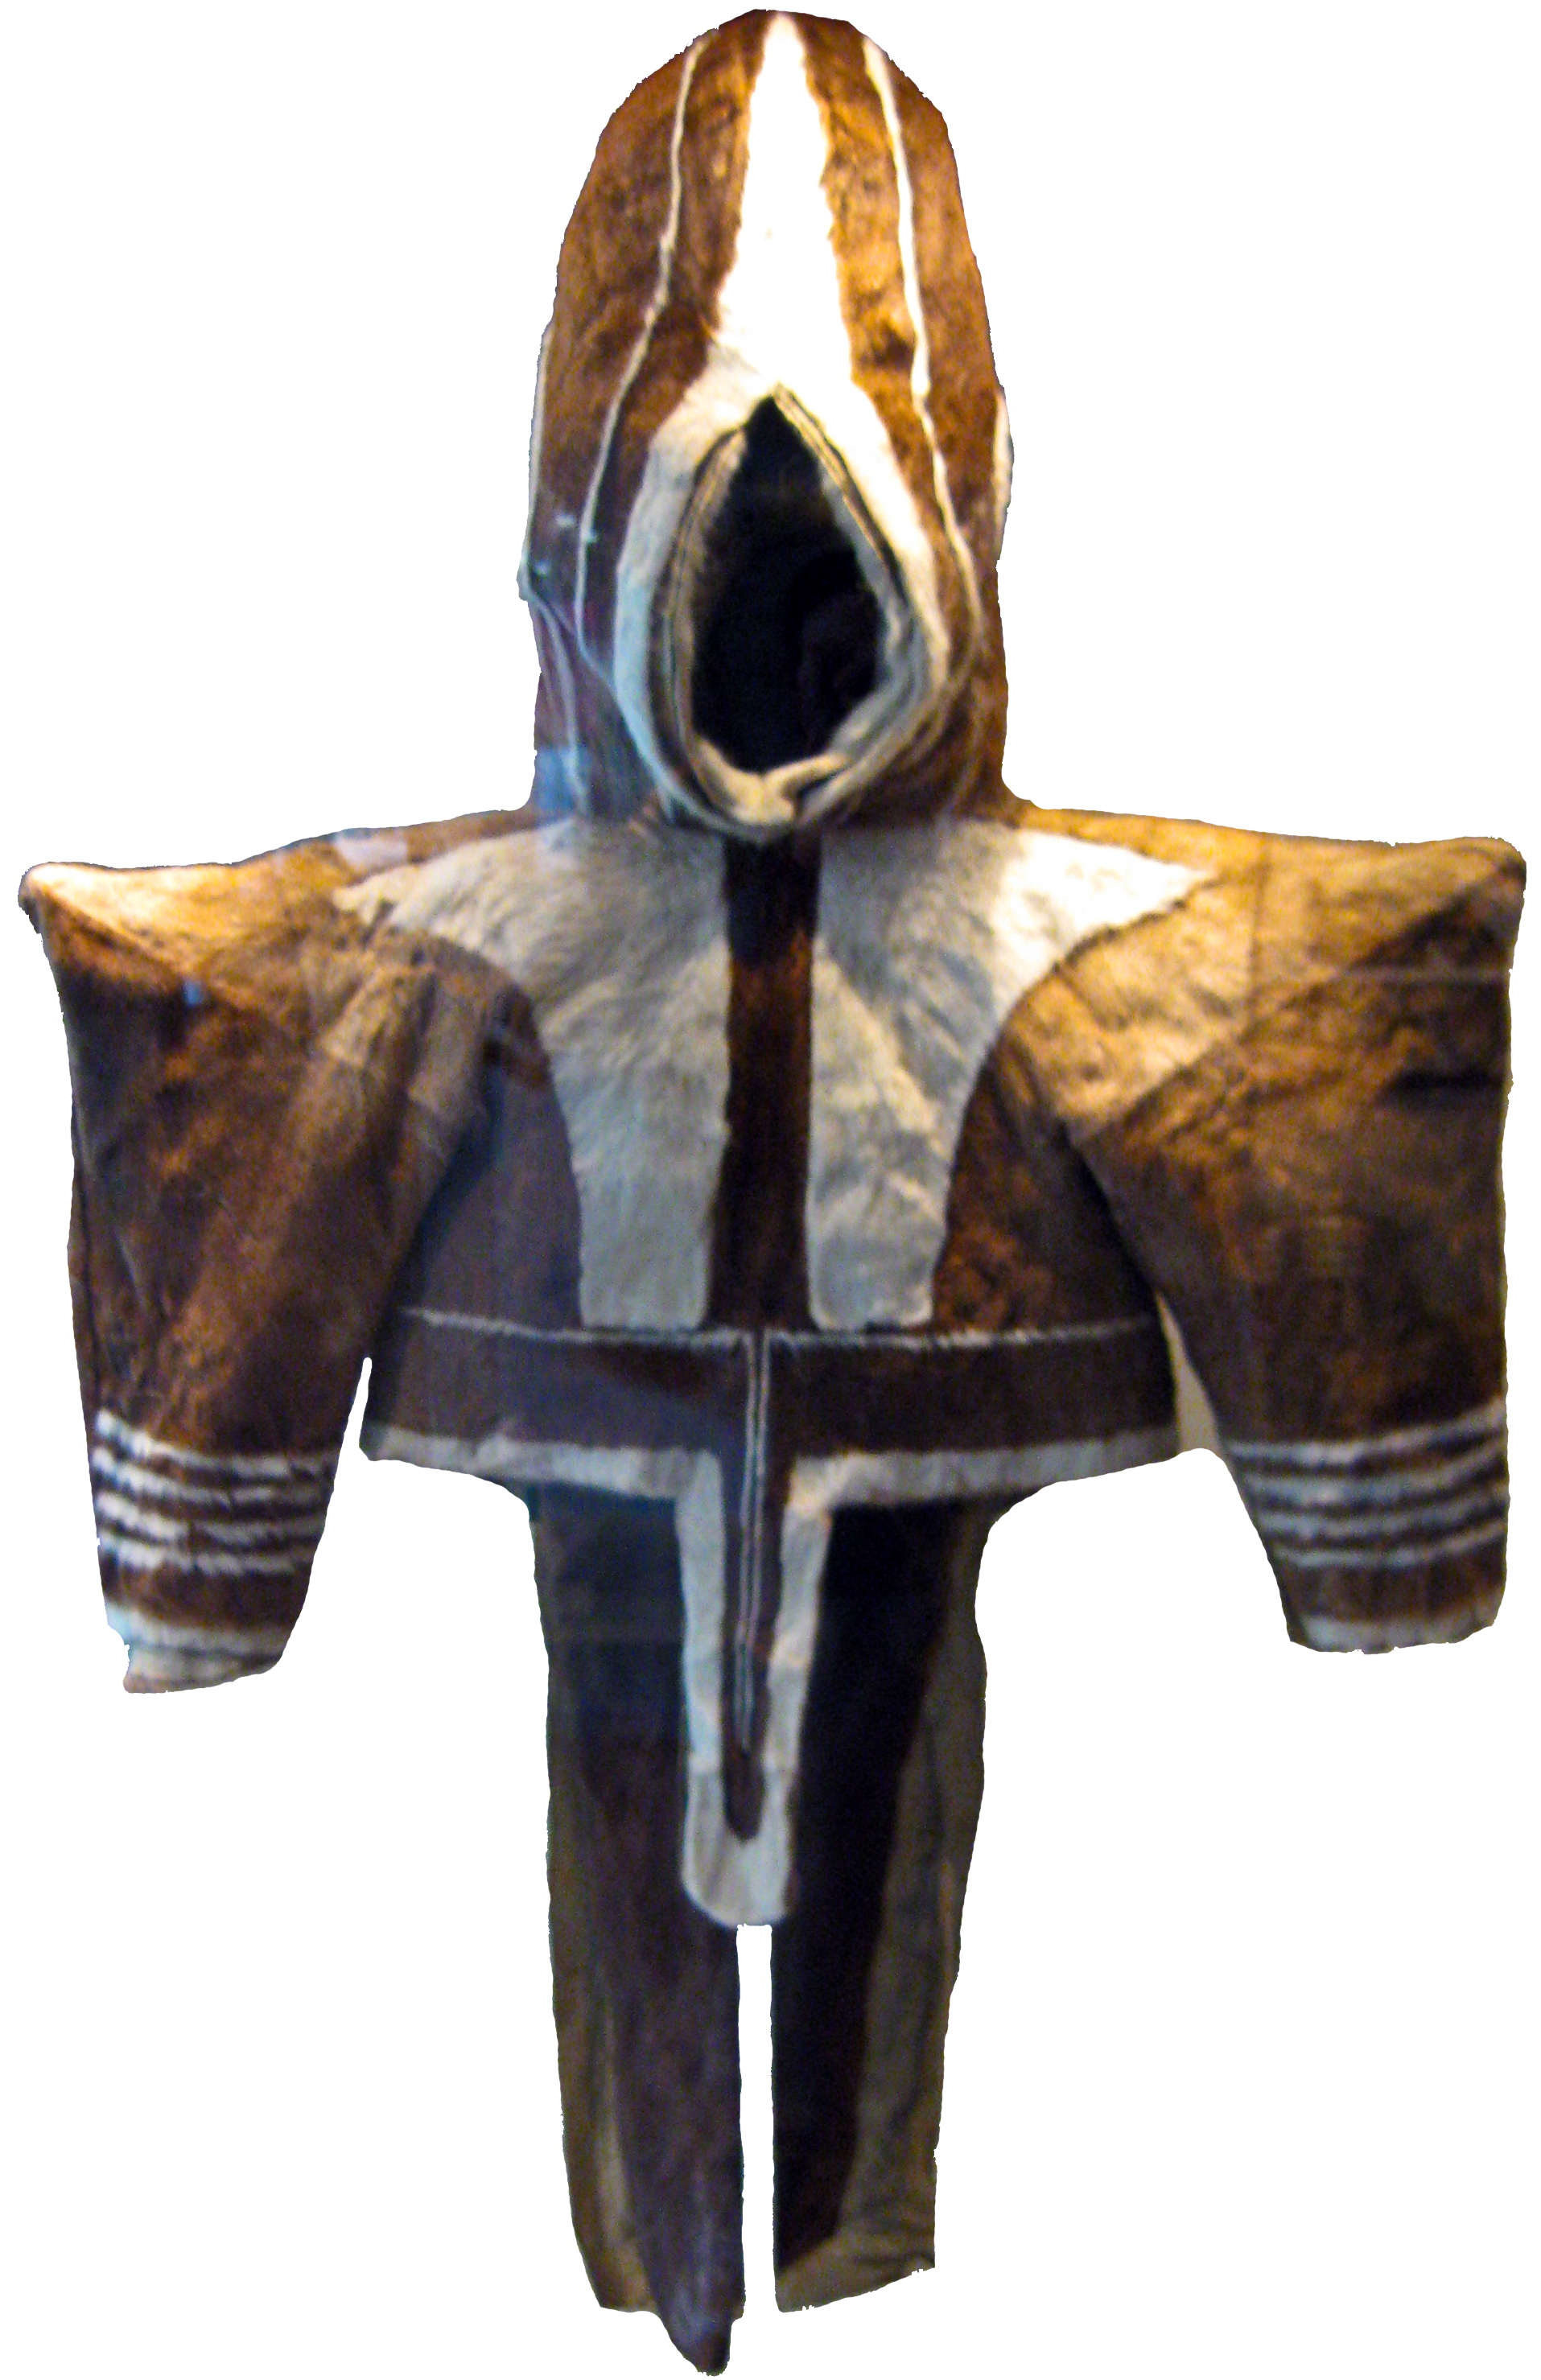 http://upload.wikimedia.org/wikipedia/commons/7/7d/Early_20th_Century_Inuit_parka_%28UBC%29.jpg